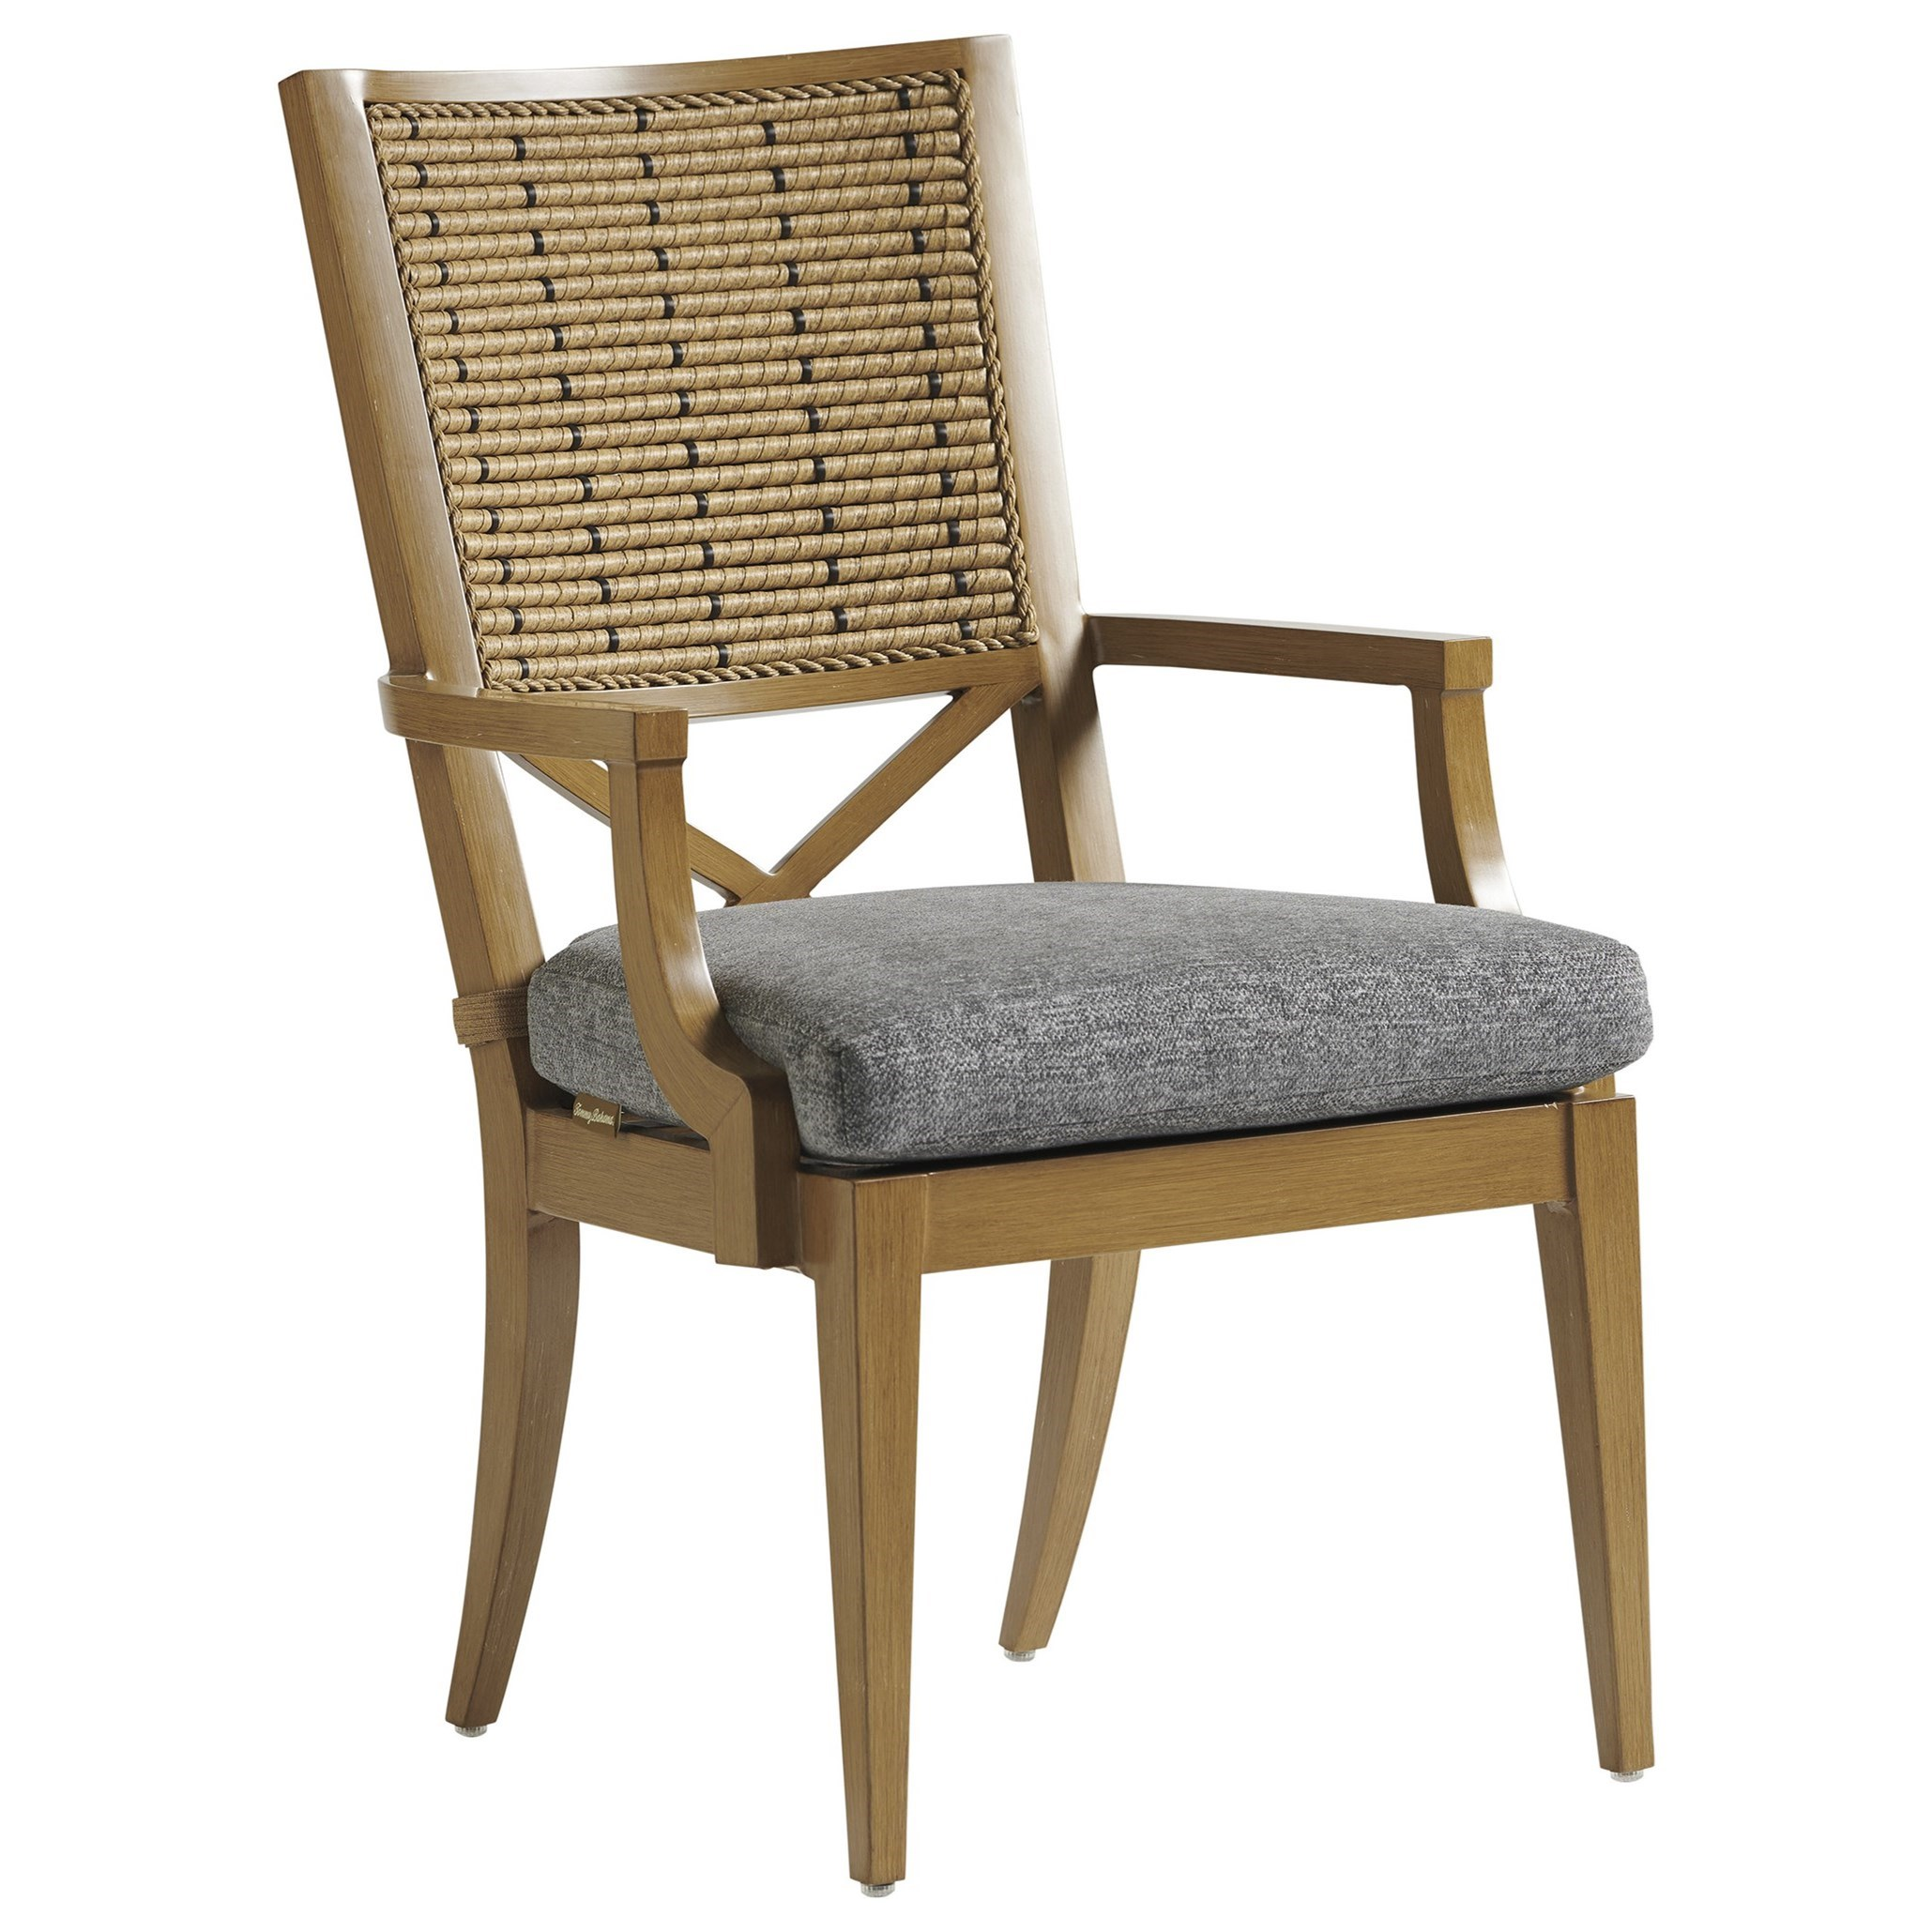 Los Altos Valley View Arm Dining Chair by Tommy Bahama Outdoor Living at Baer's Furniture